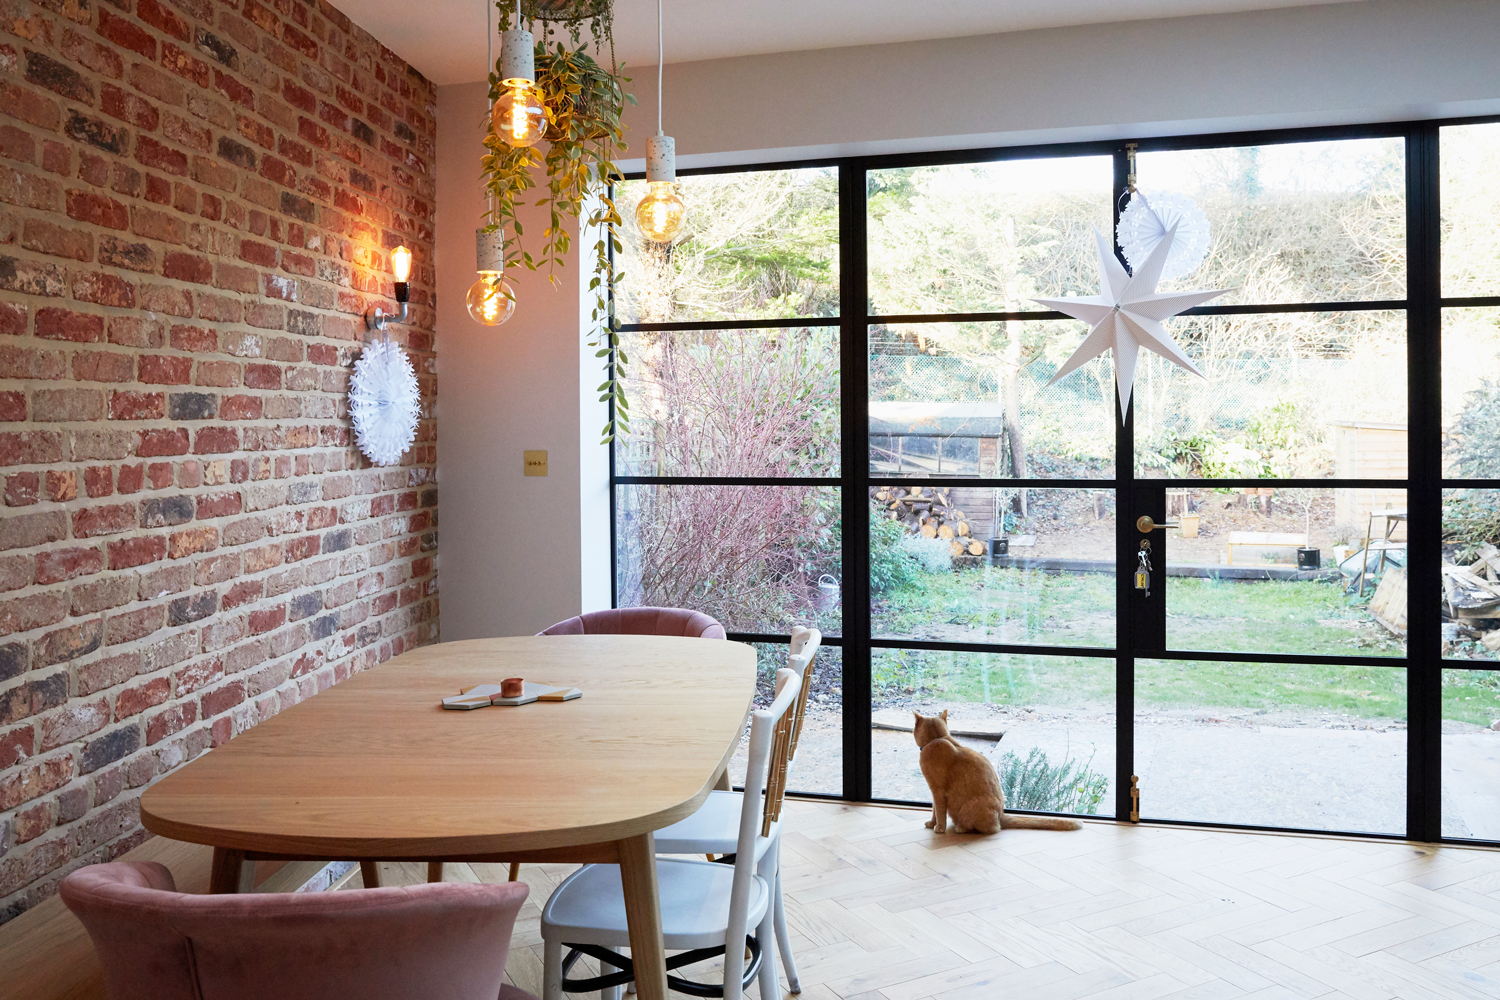 Cat looks out of Crittall style doors in front of modern oak dining table and upholstered chairs